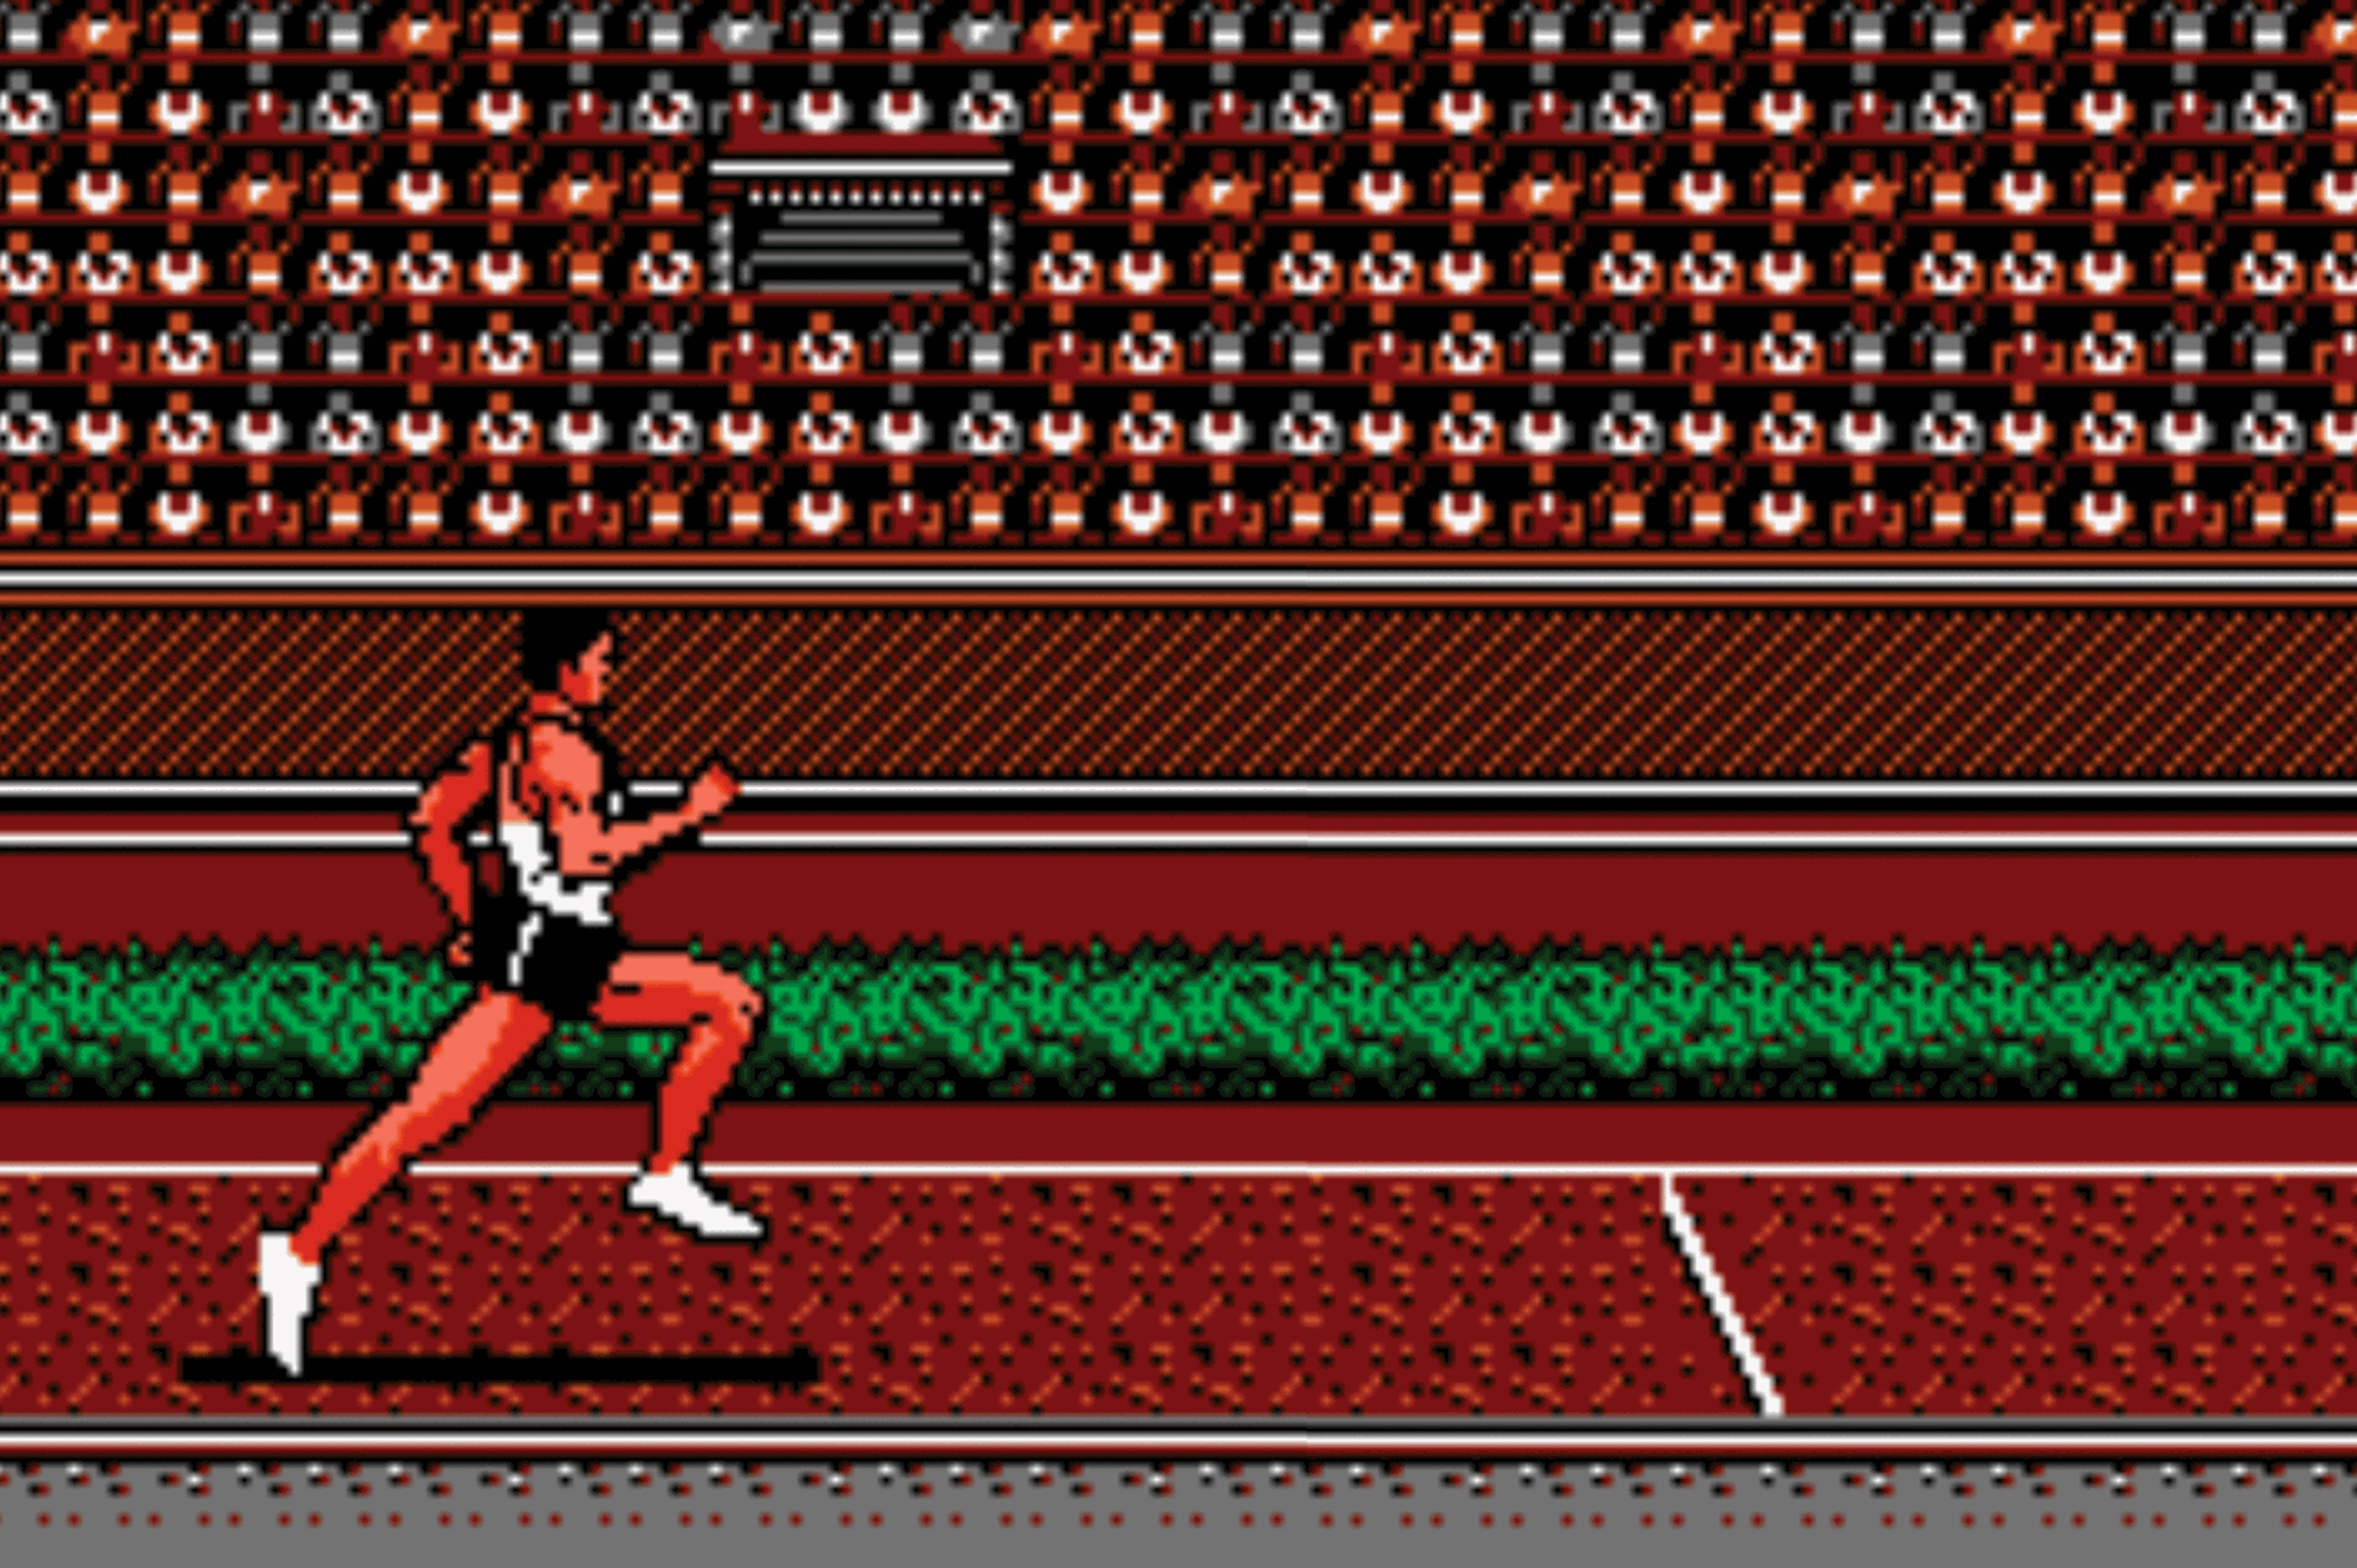 Bitmapped image of a runner approaching the finish line.